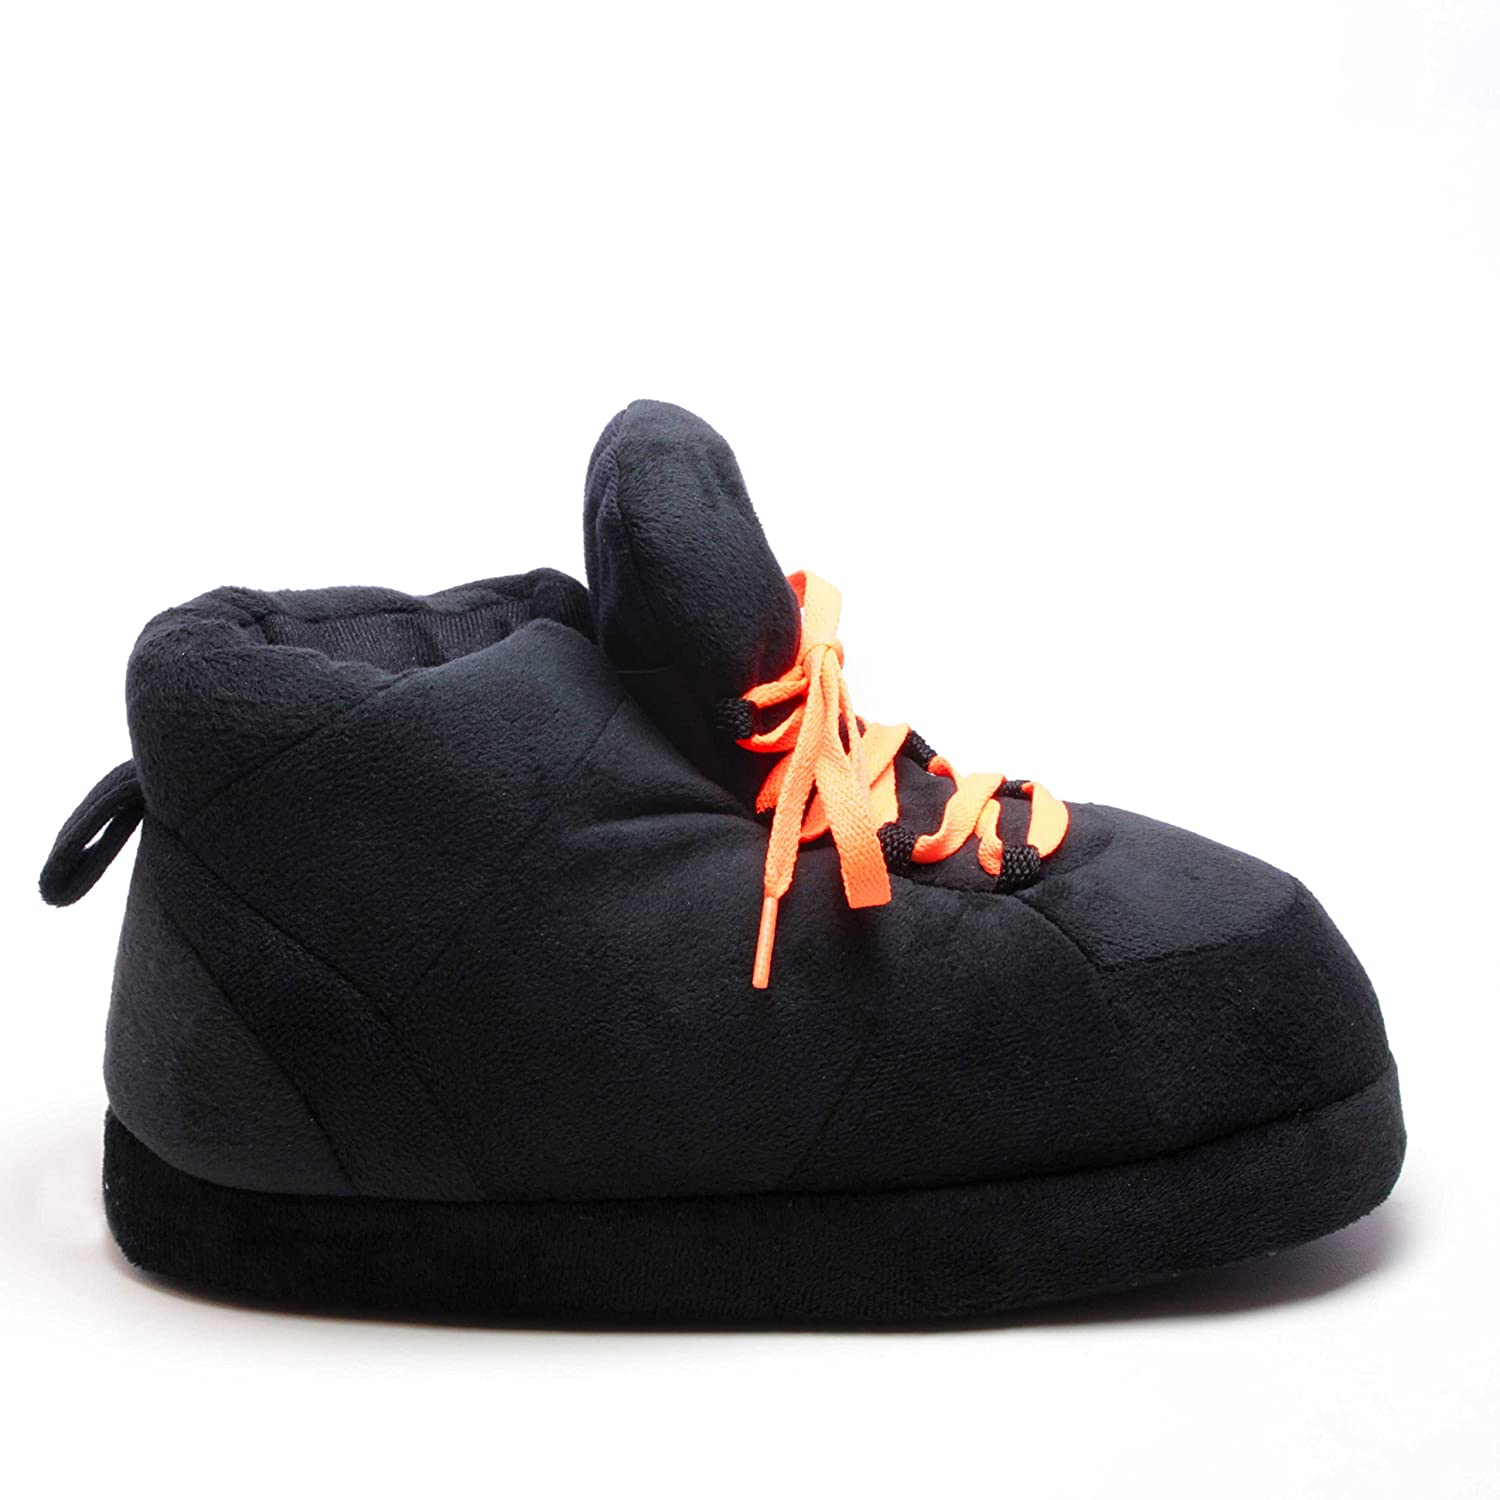 Sleeper - z - Chaussons Noir Chaussons - Orange Adulte Homme Femme - Cadeau Original Orange 3c8bee3 - reprogrammed.space